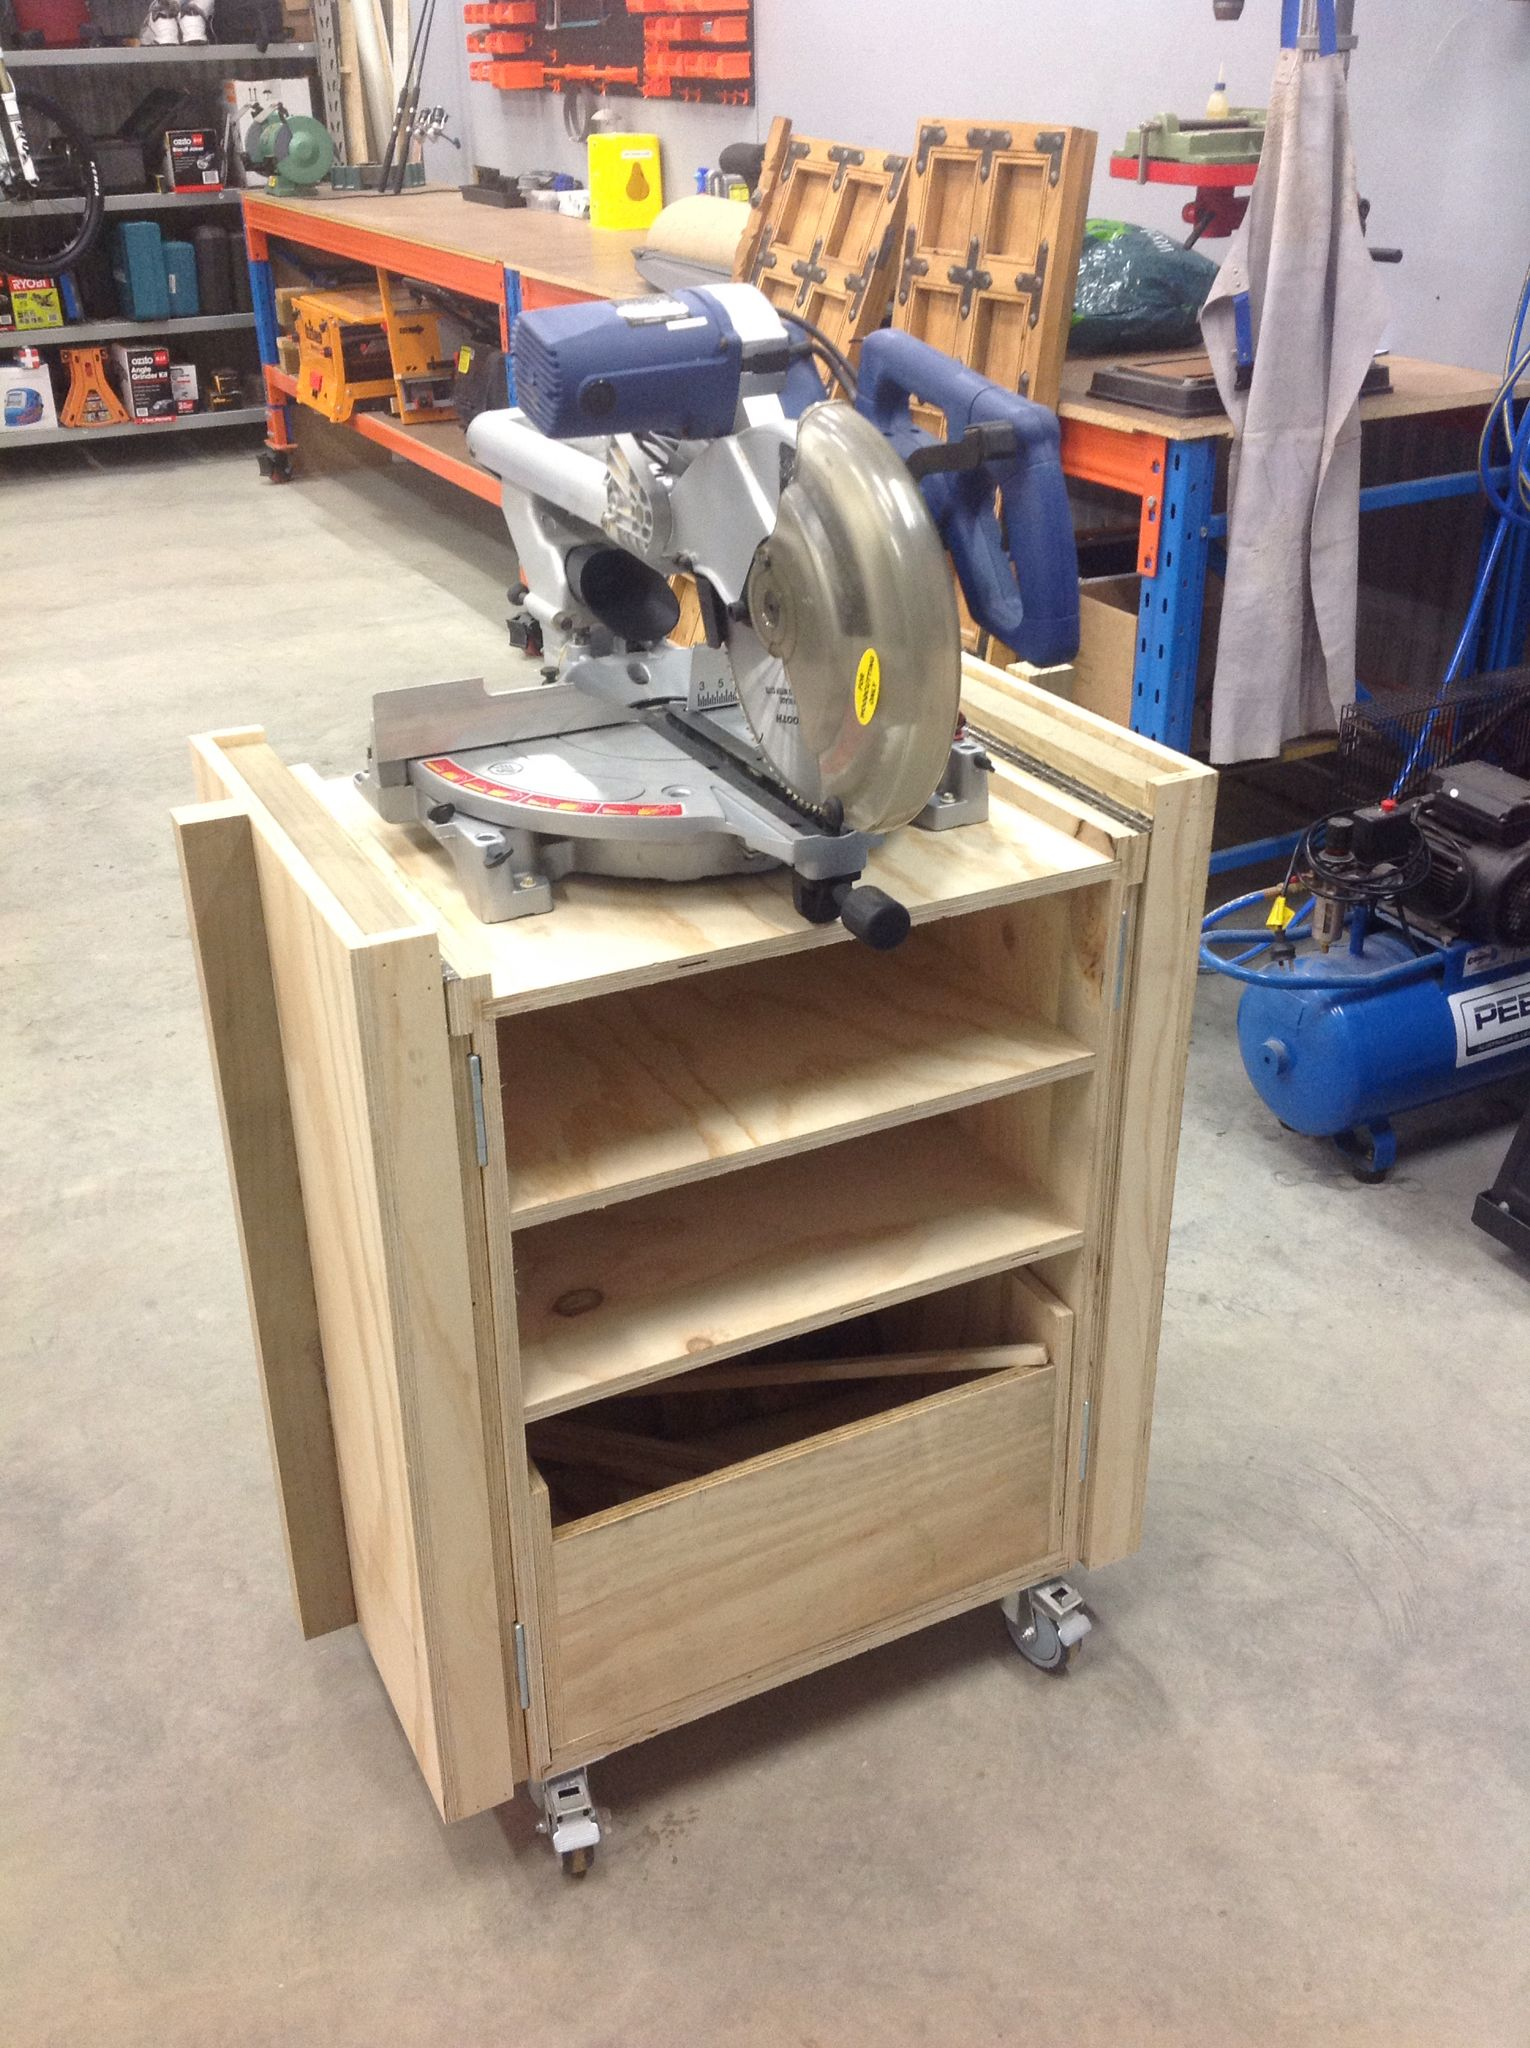 Mitre saw folding table. Miter saw table, Woodworking